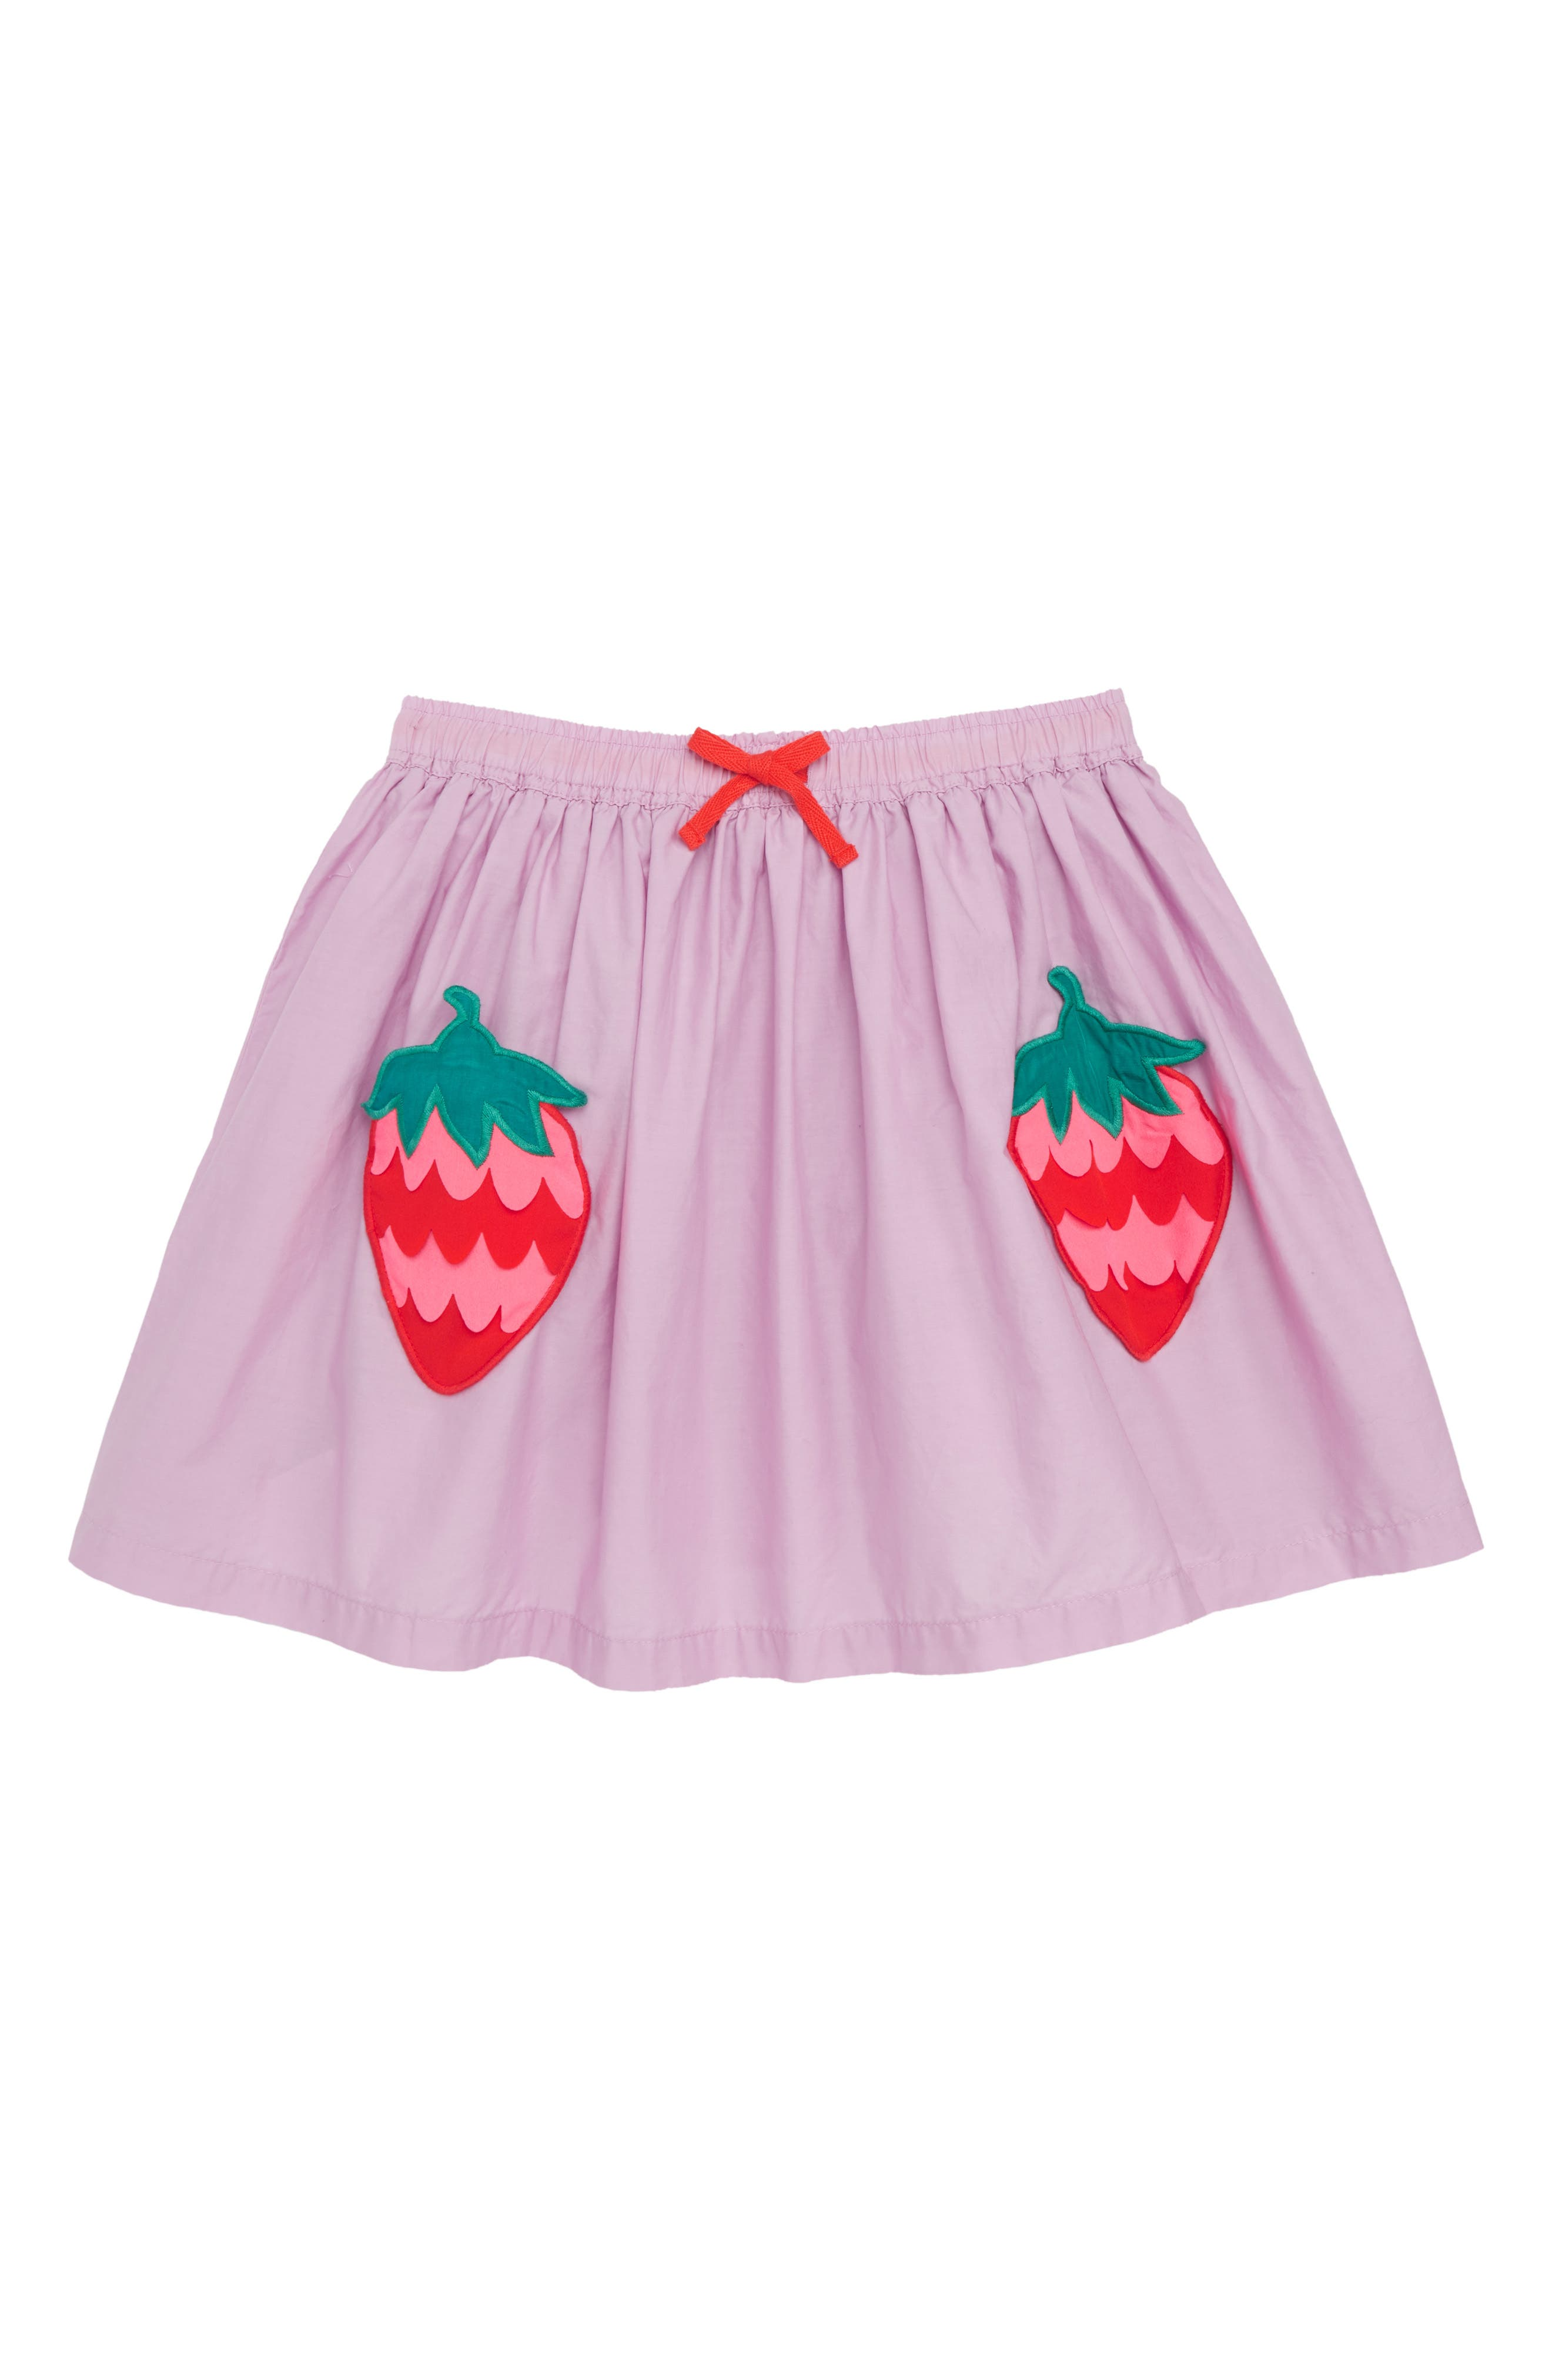 Mini Boden Novelty Pocket Skirt (Toddler Girls, Little Girls & Big Girls)